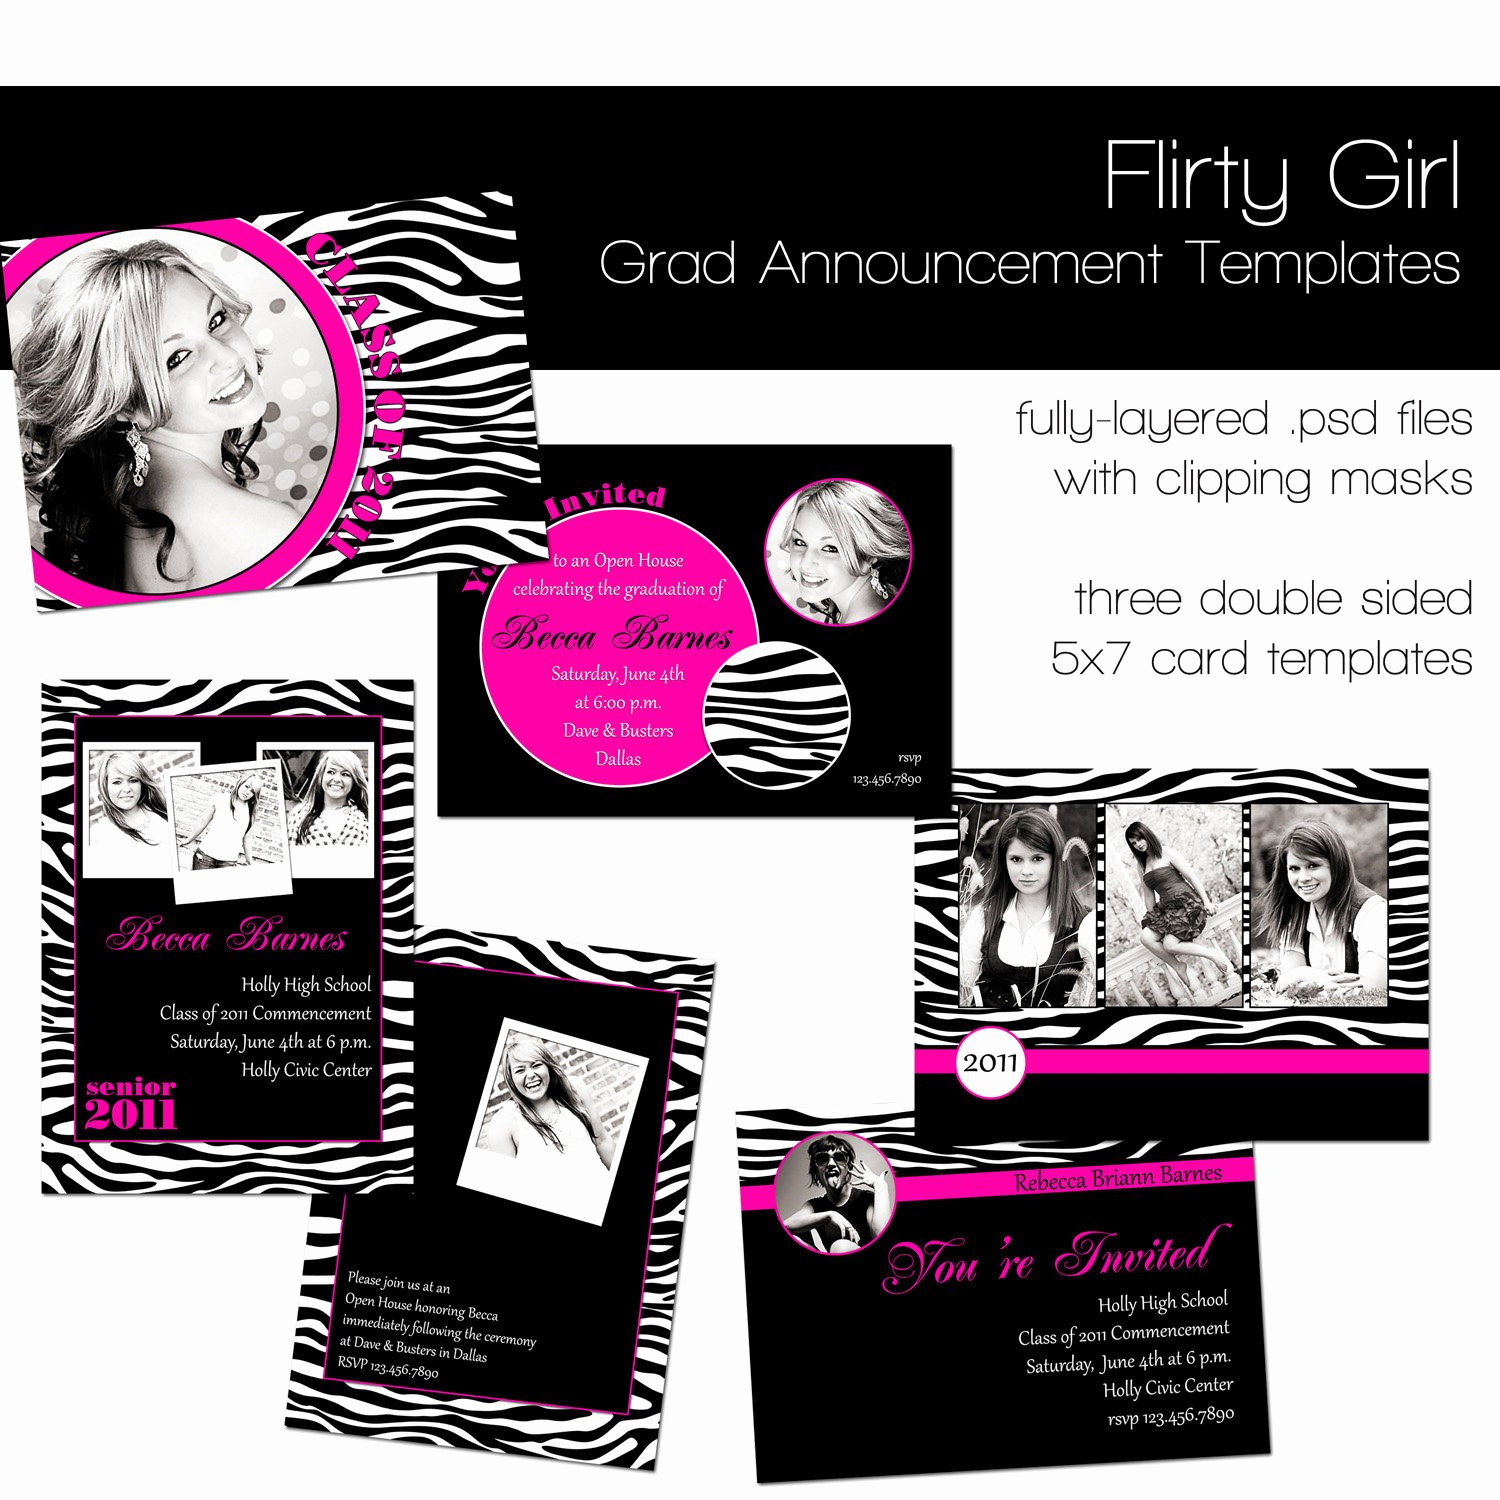 Free Graduation Announcements Templates Lovely Items Similar to Flirty Girl Graduation Announcement